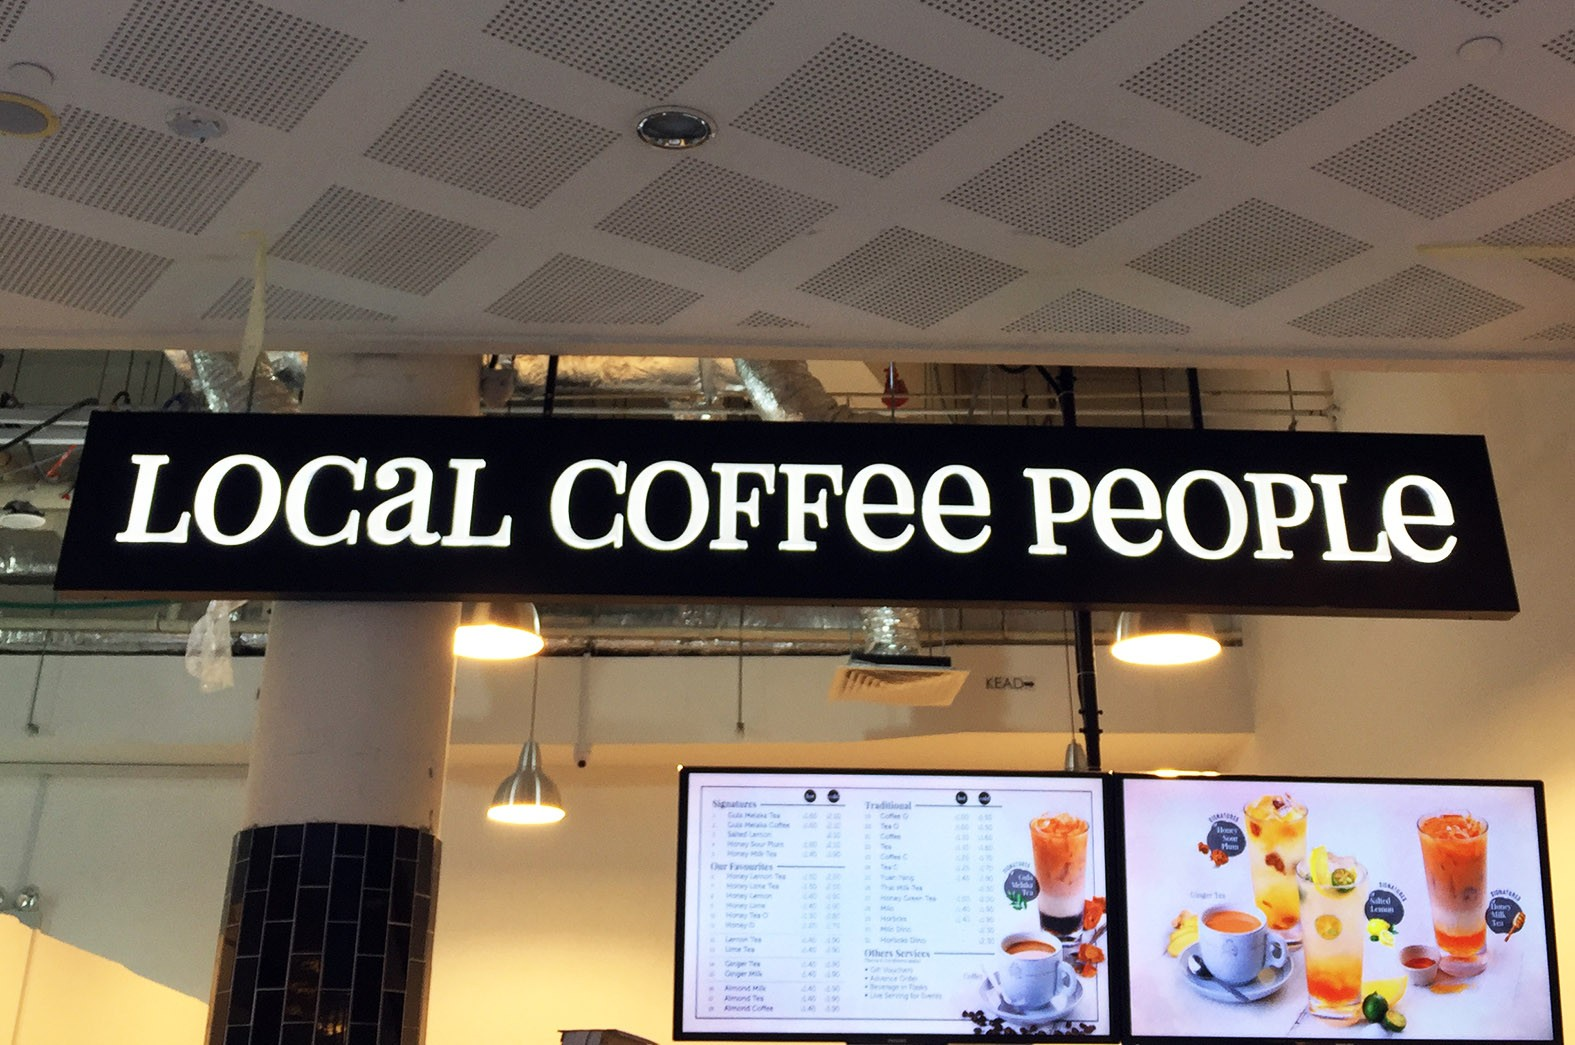 Local Coffee People